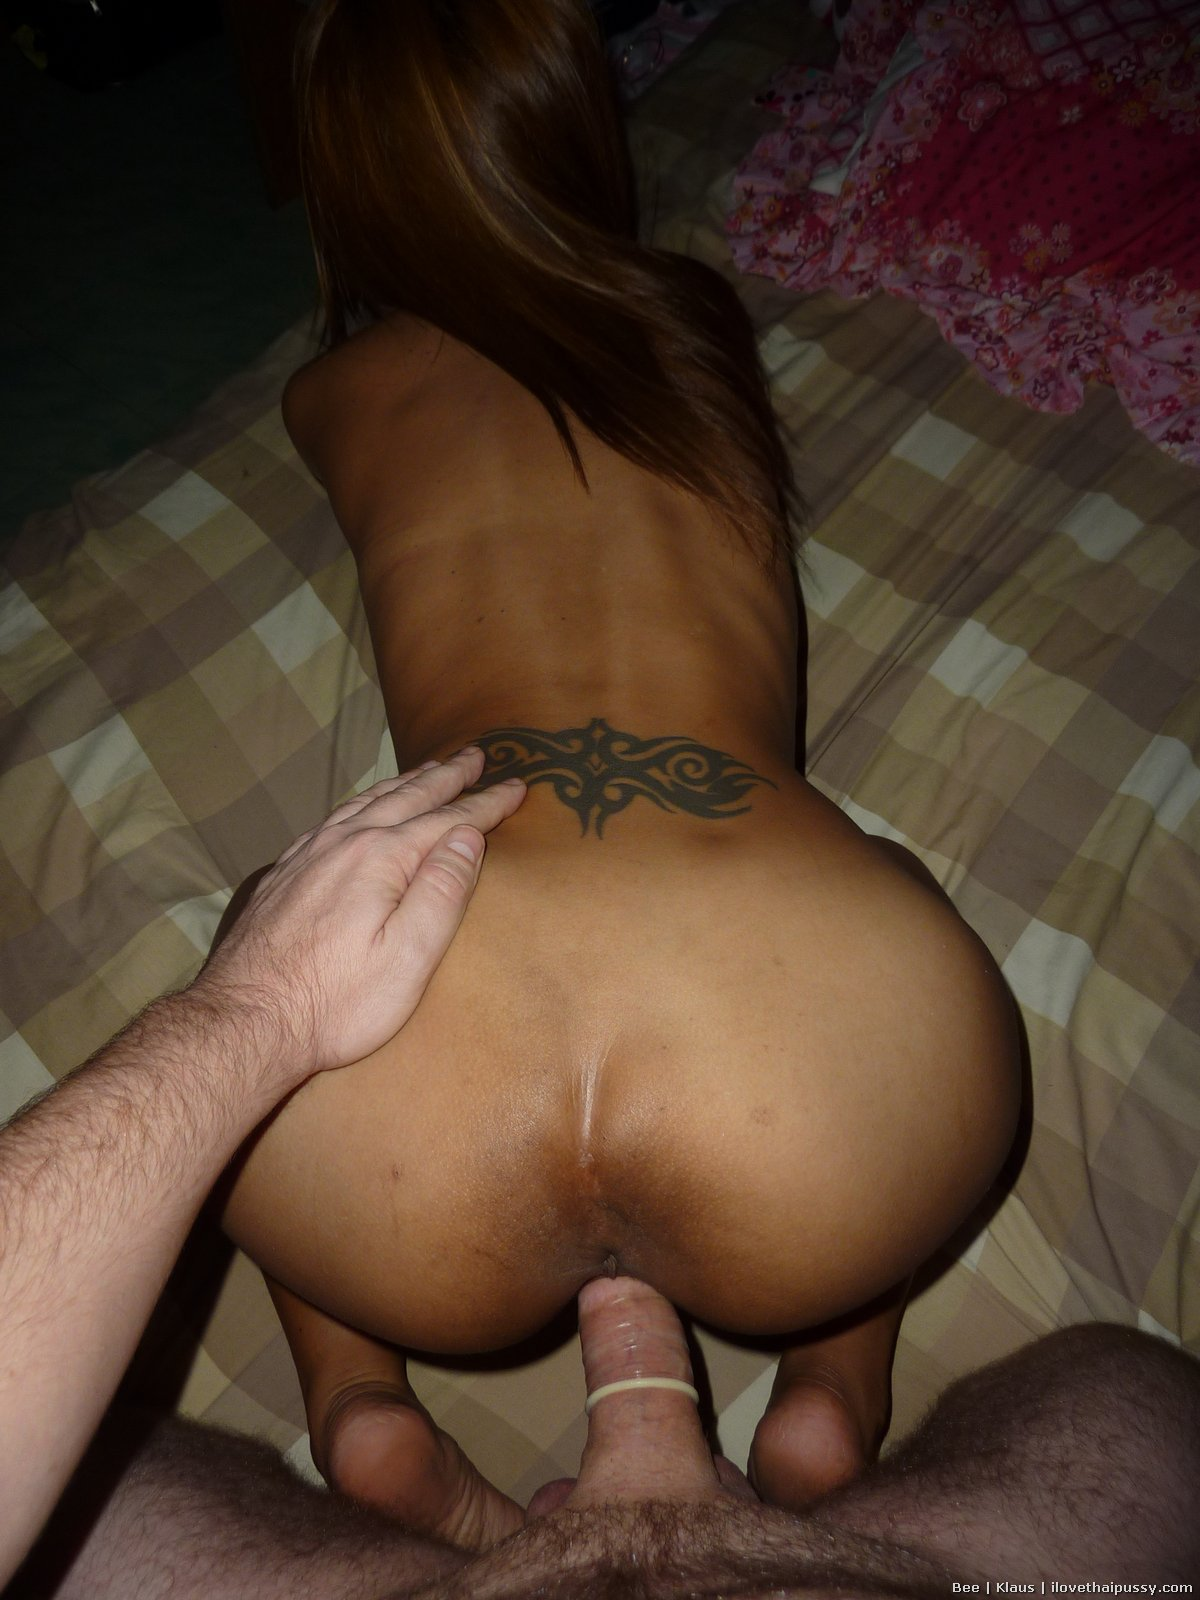 Great ass and pussy doggy style 4